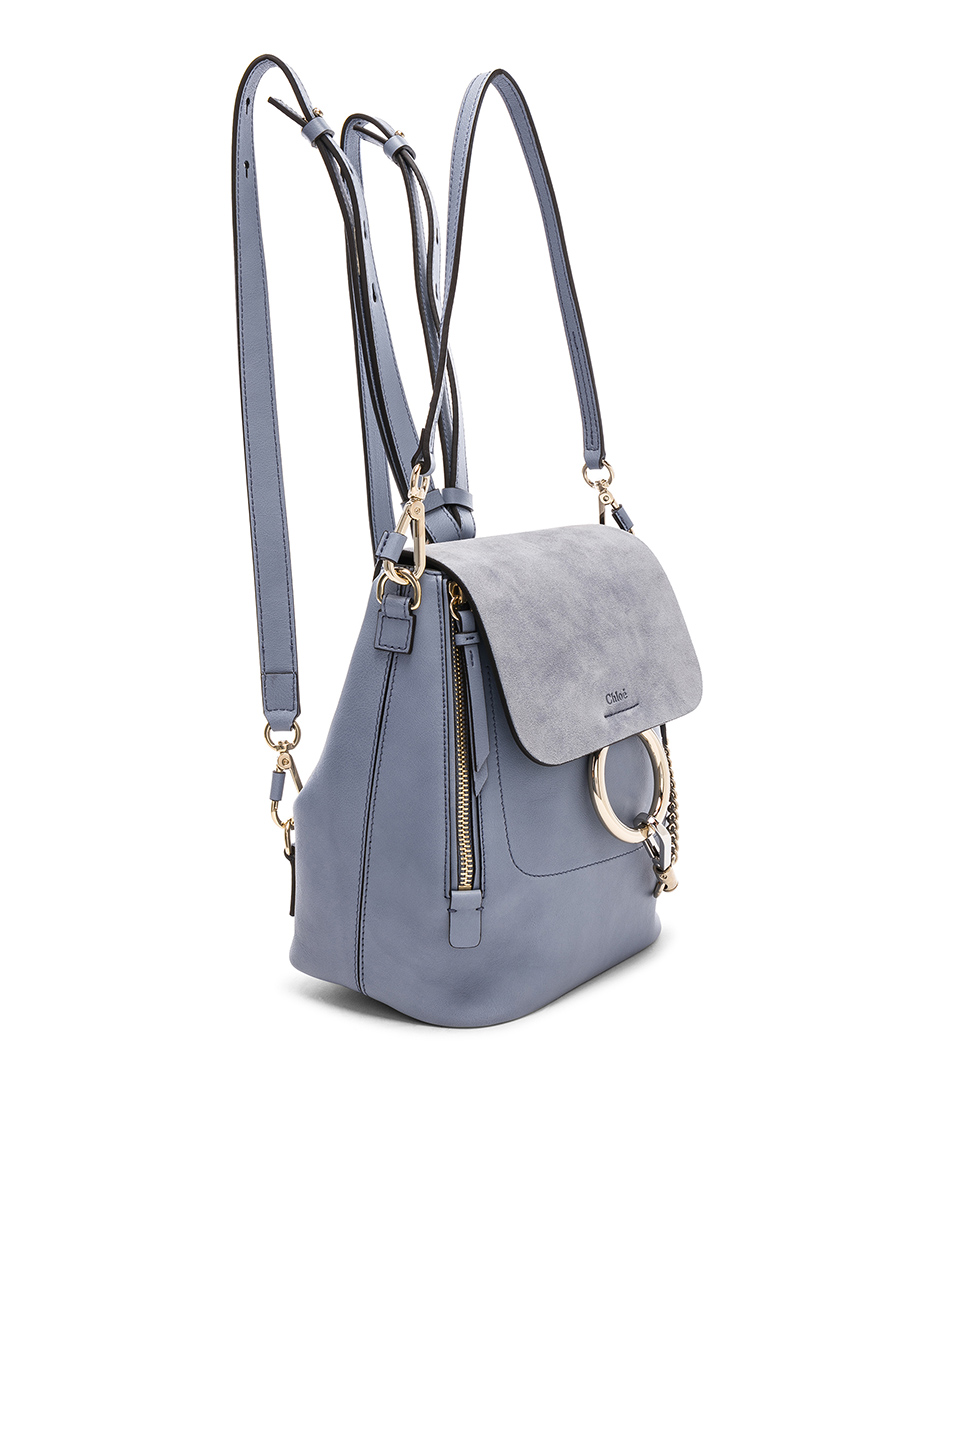 5b2f8bb4a6 Buy Original Chloe Small Faye Calfskin   Suede Backpack at Indonesia ...